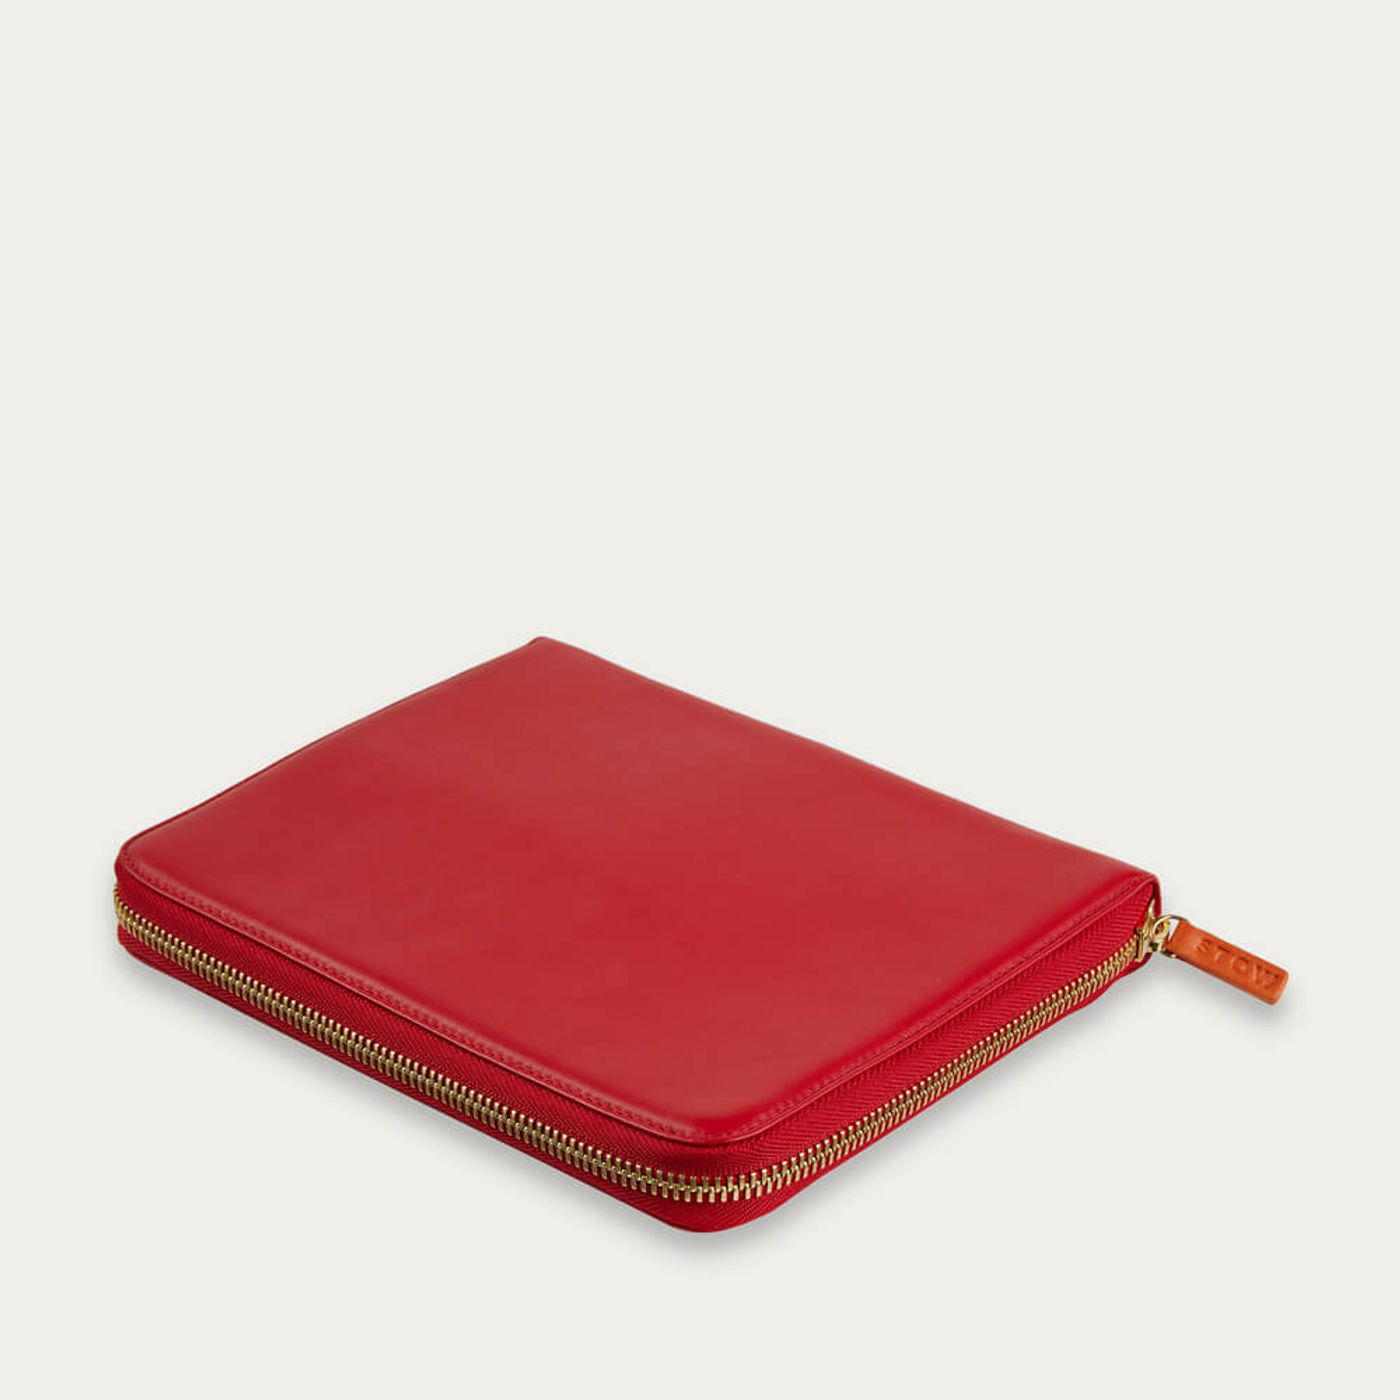 Ridge Red The First Class Leather Tech Case   Bombinate